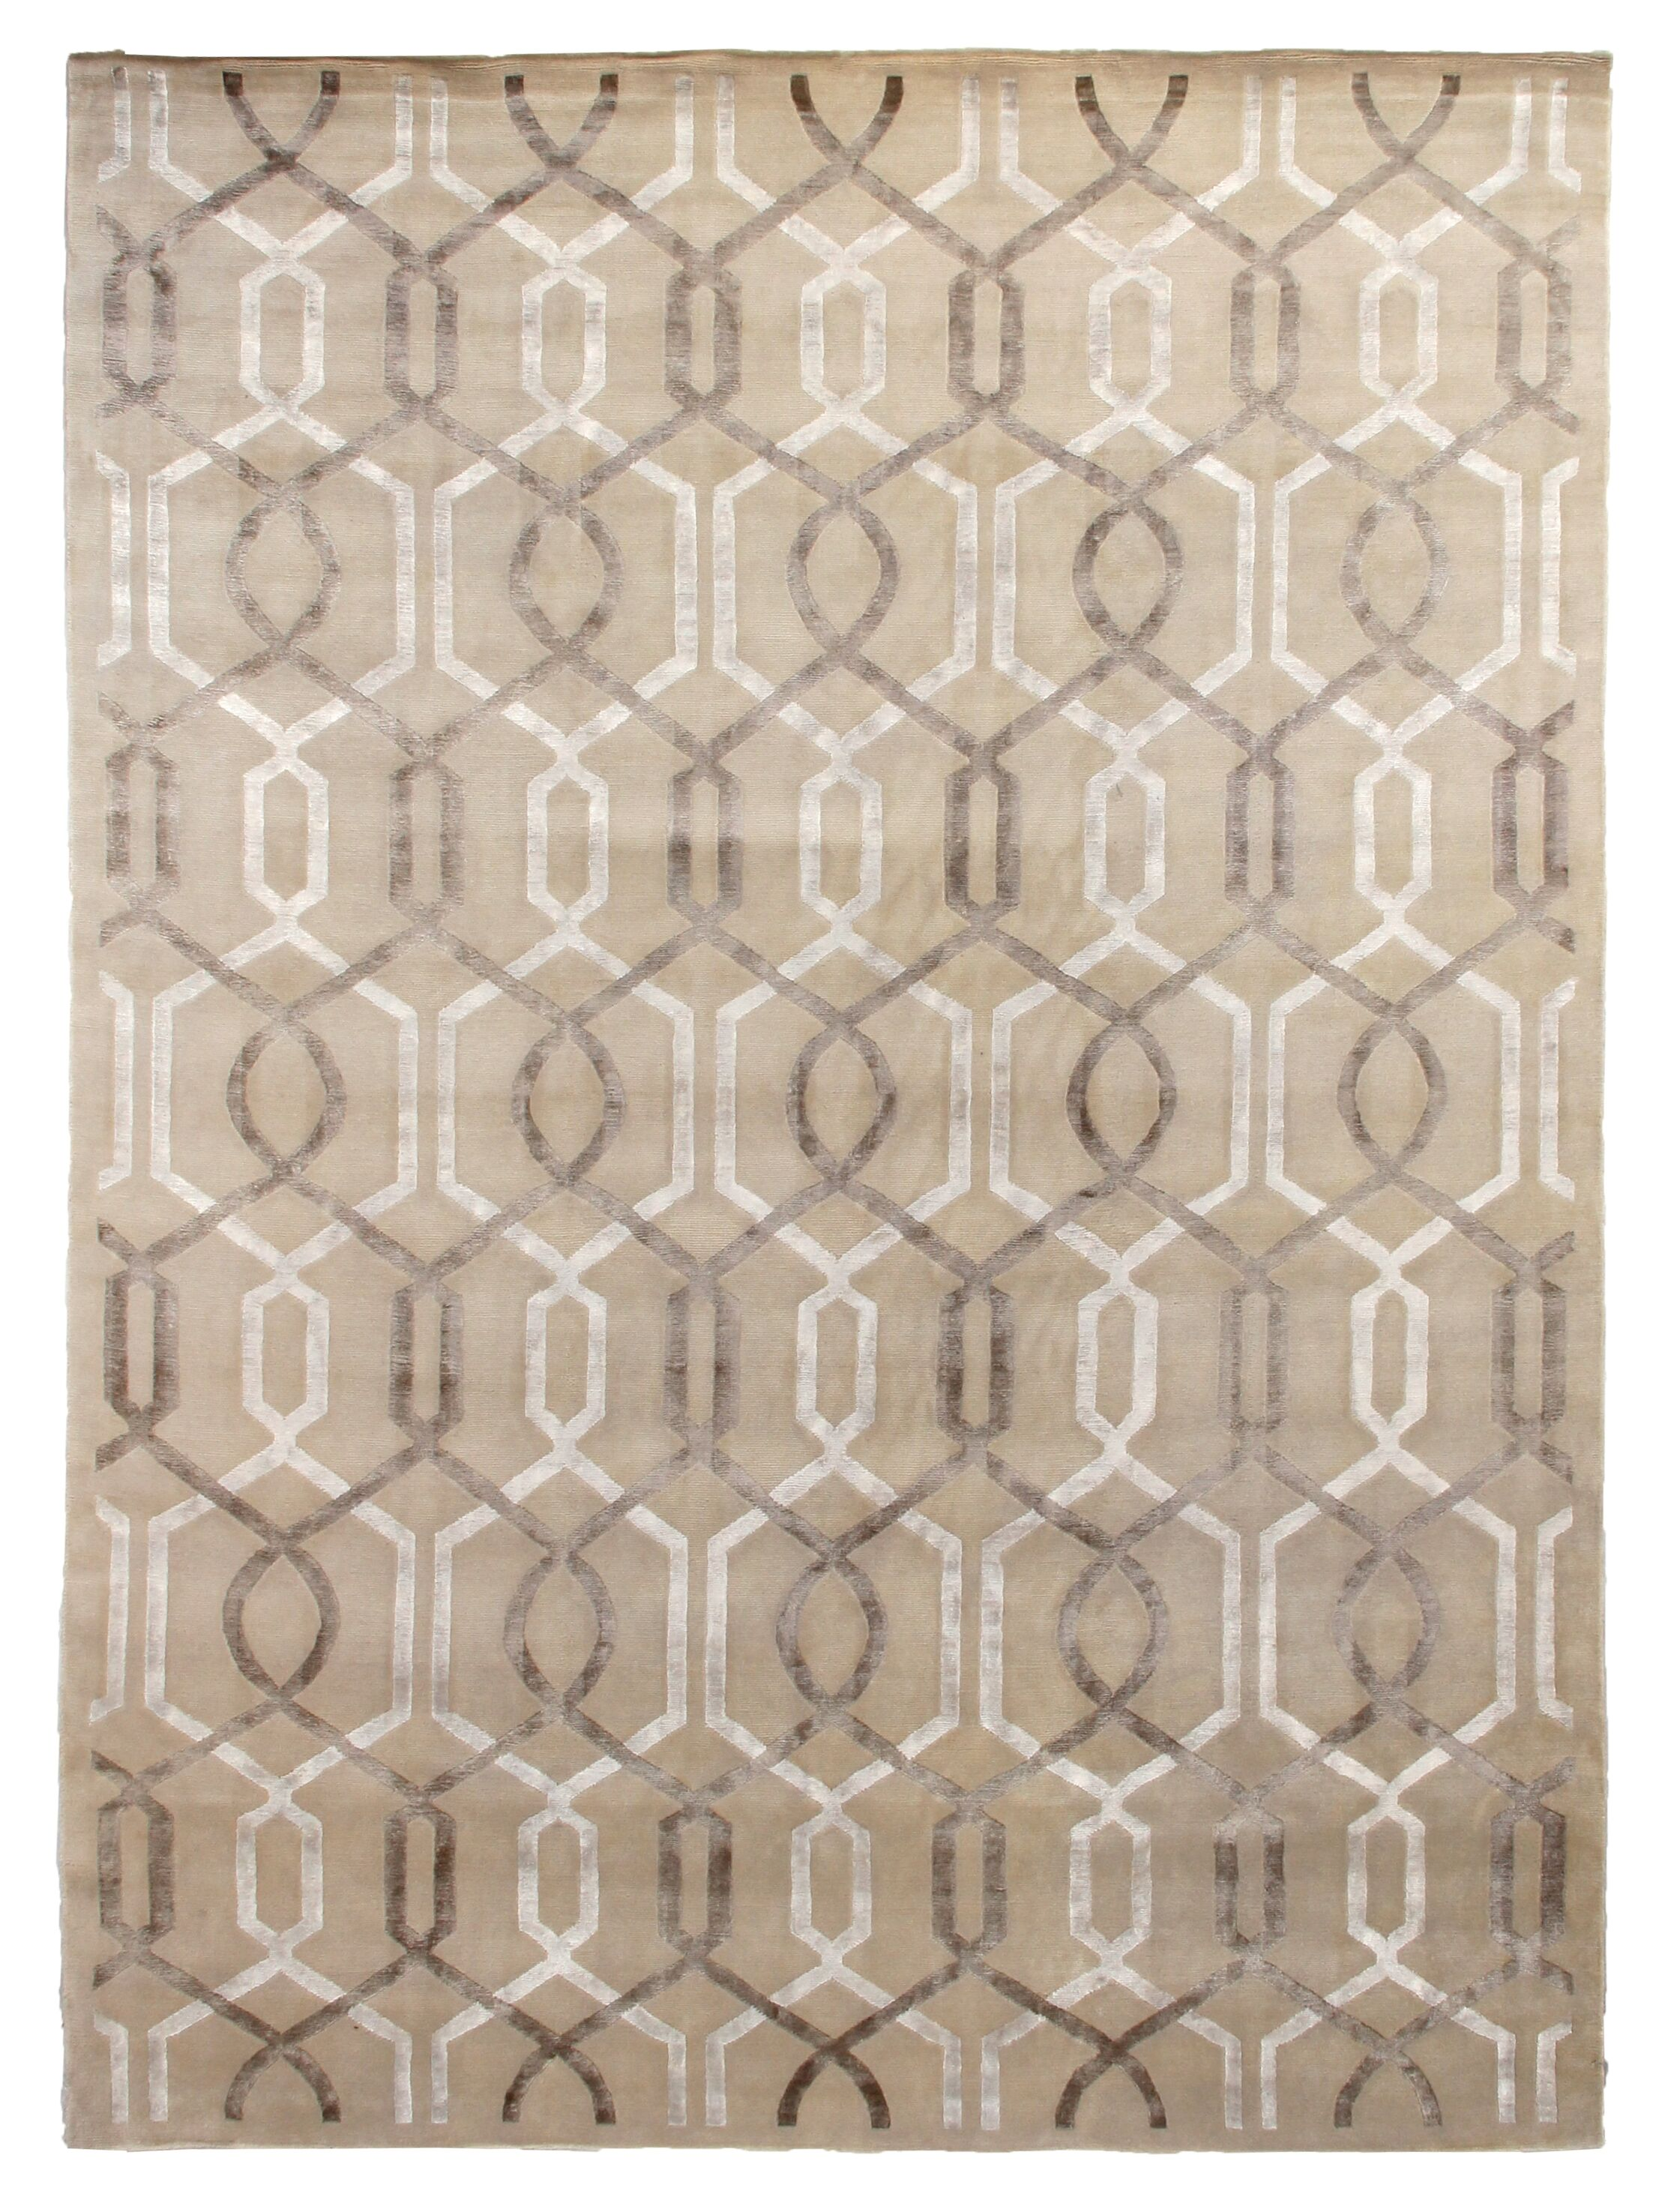 Hand-Knotted Wool/Silk Beige Area Rug Rug Size: Rectangle 9' x 12'